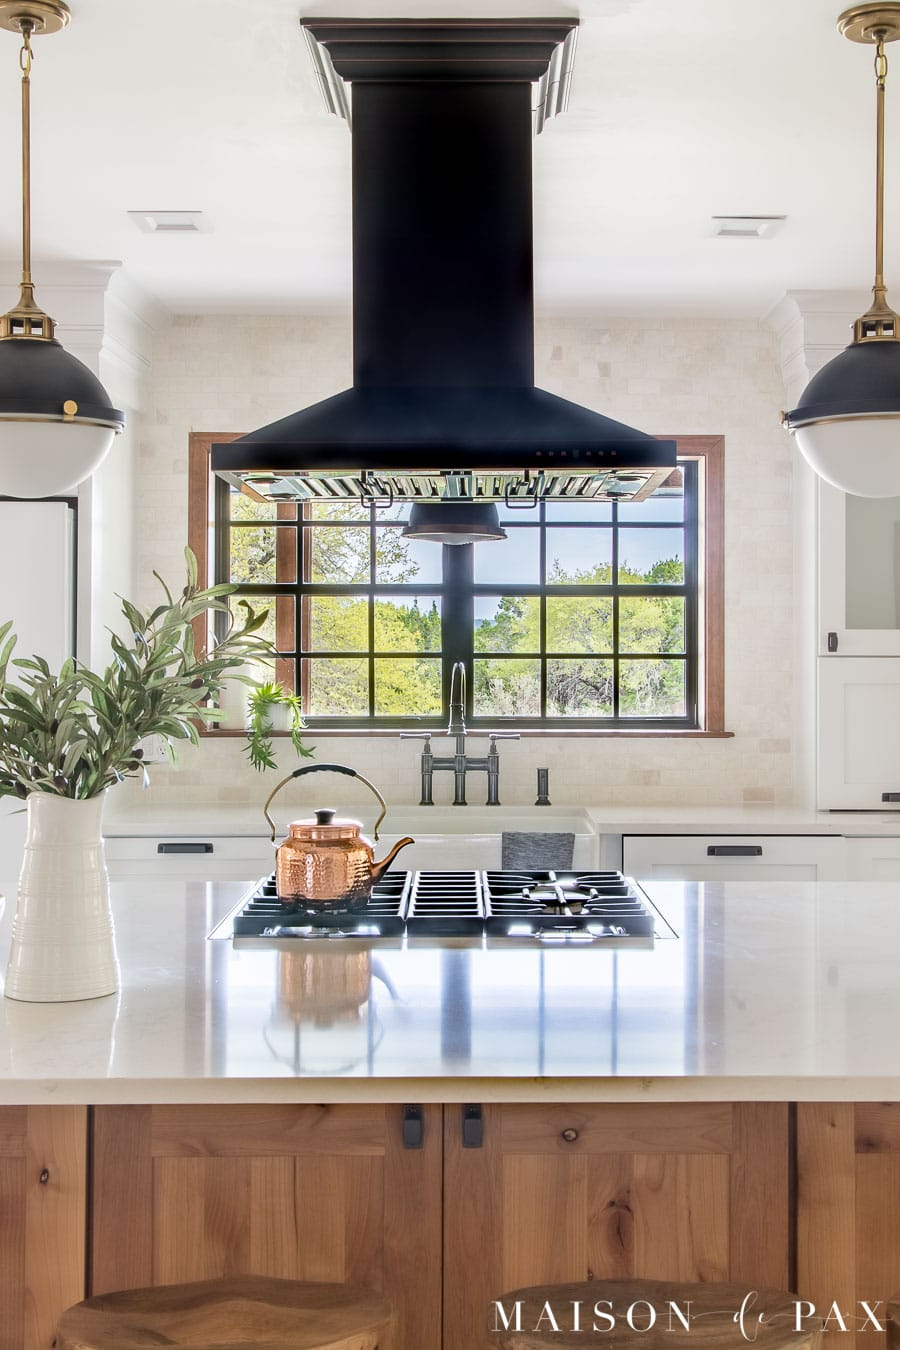 white counters and black range hood with white marble backsplash | Maison de Pax